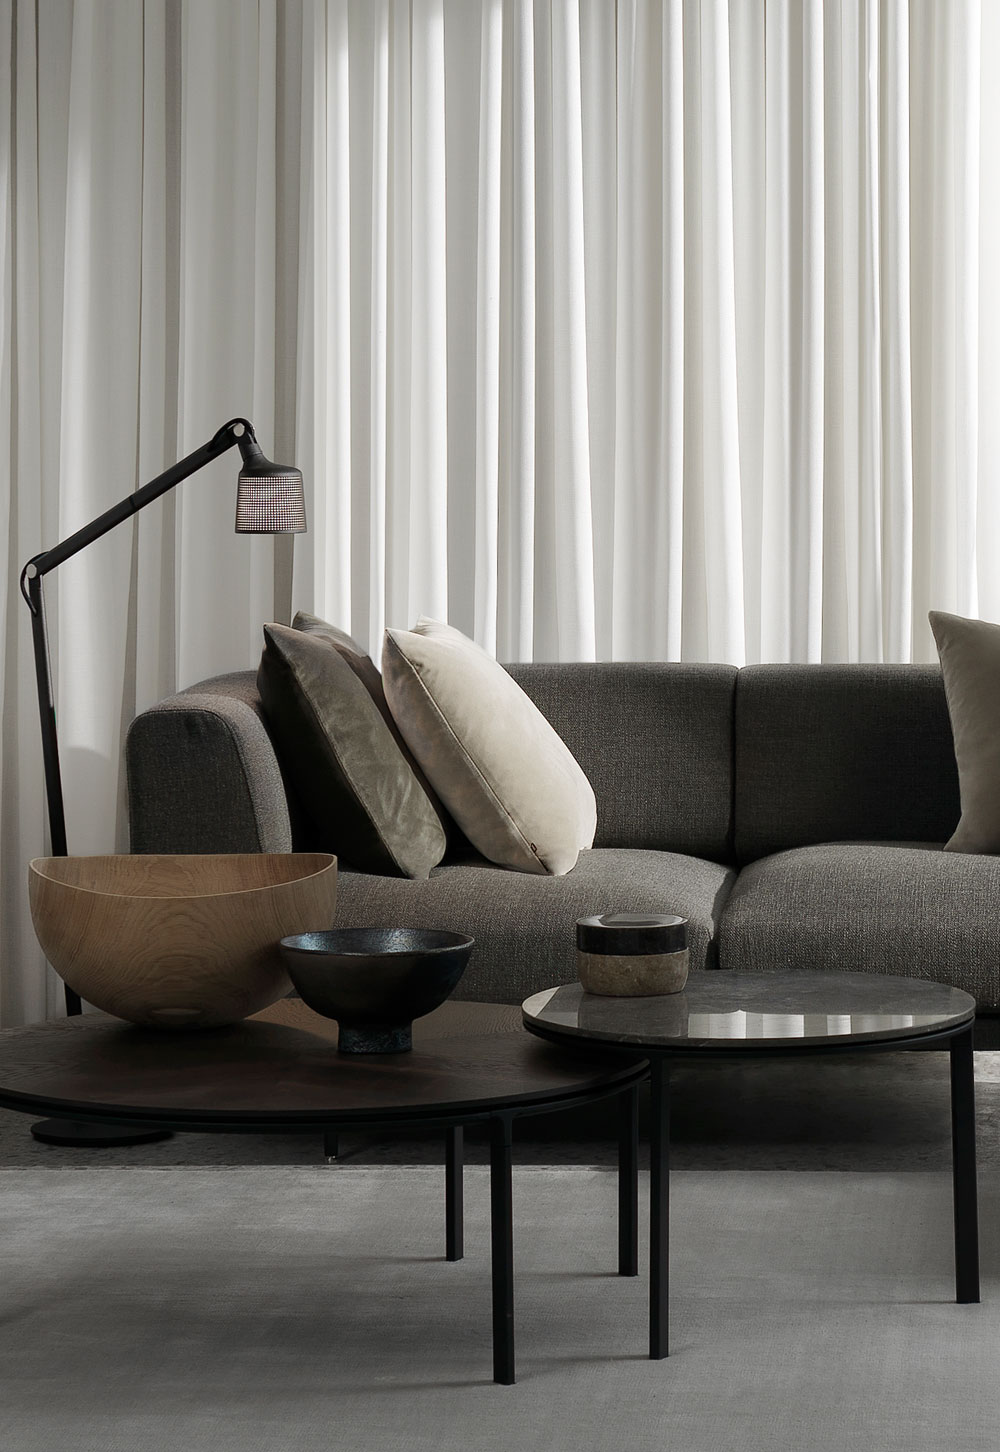 fabb sofas opens debut store and launches website interior website A Sneak Peek at Vippu0027s First Furniture Collection